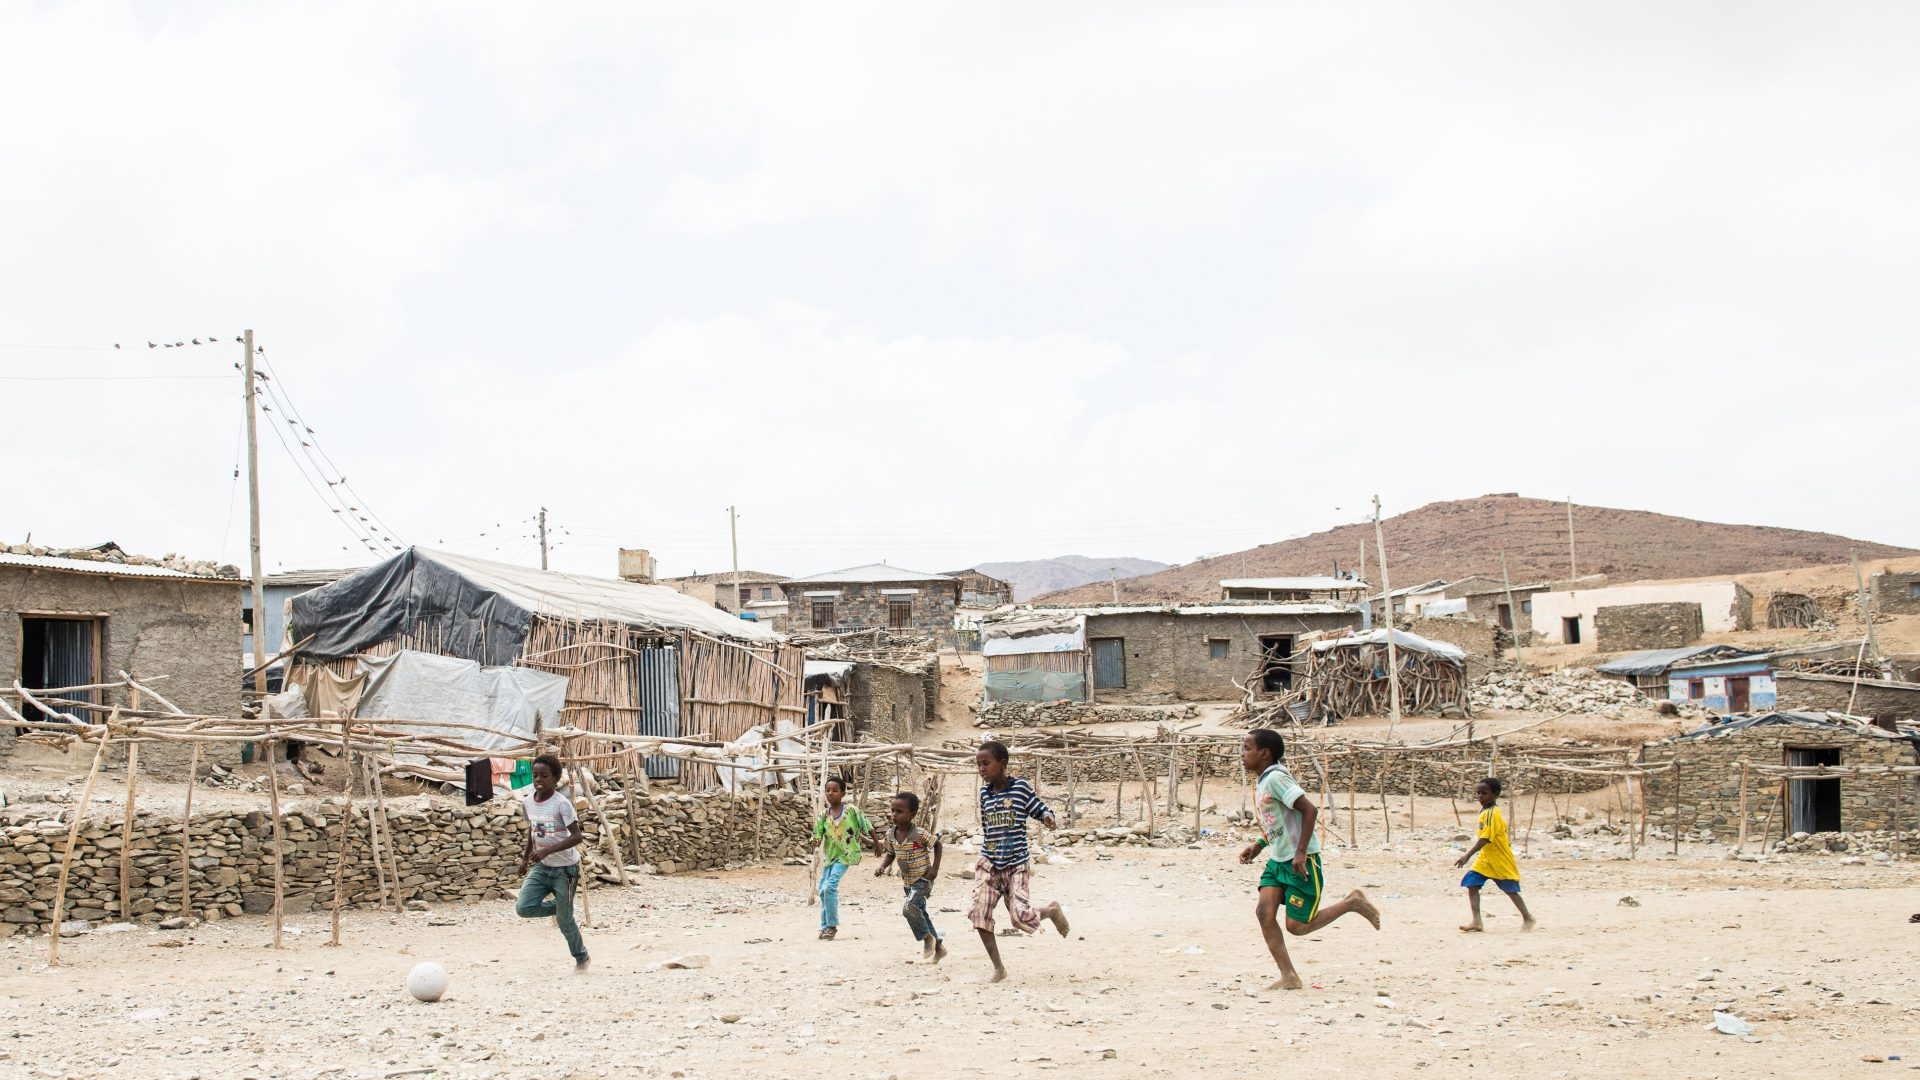 Children play soccer at a township in the area of the Danakil Depression in Ethiopia.